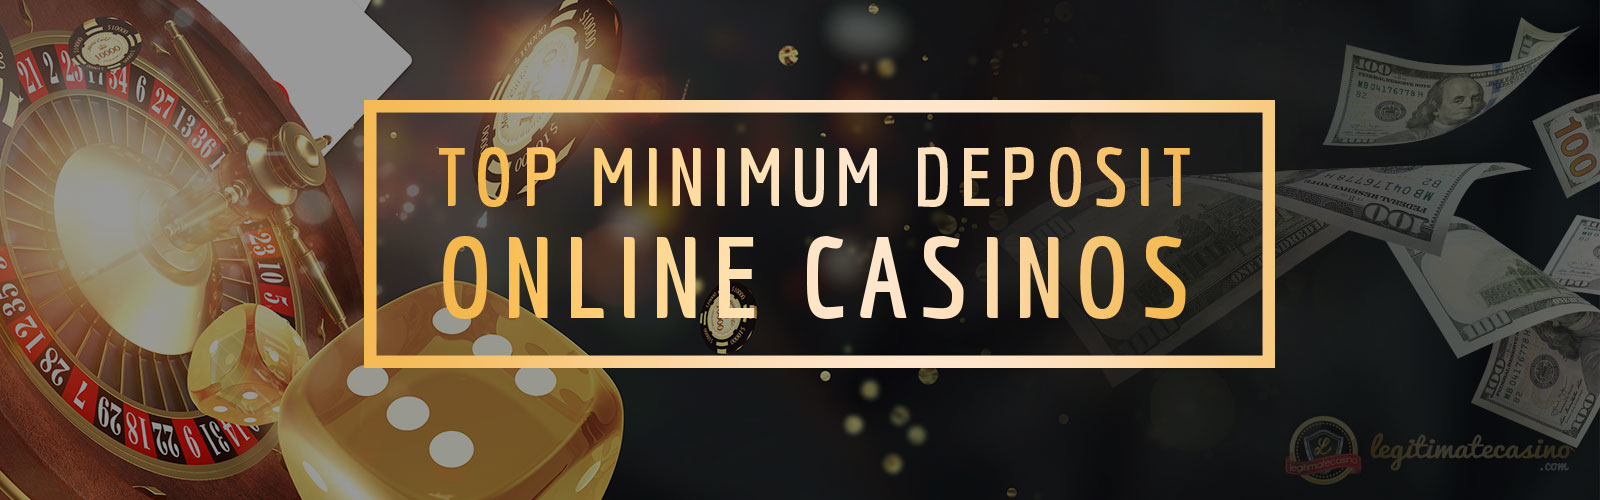 Top Minimum Deposit Online Casinos